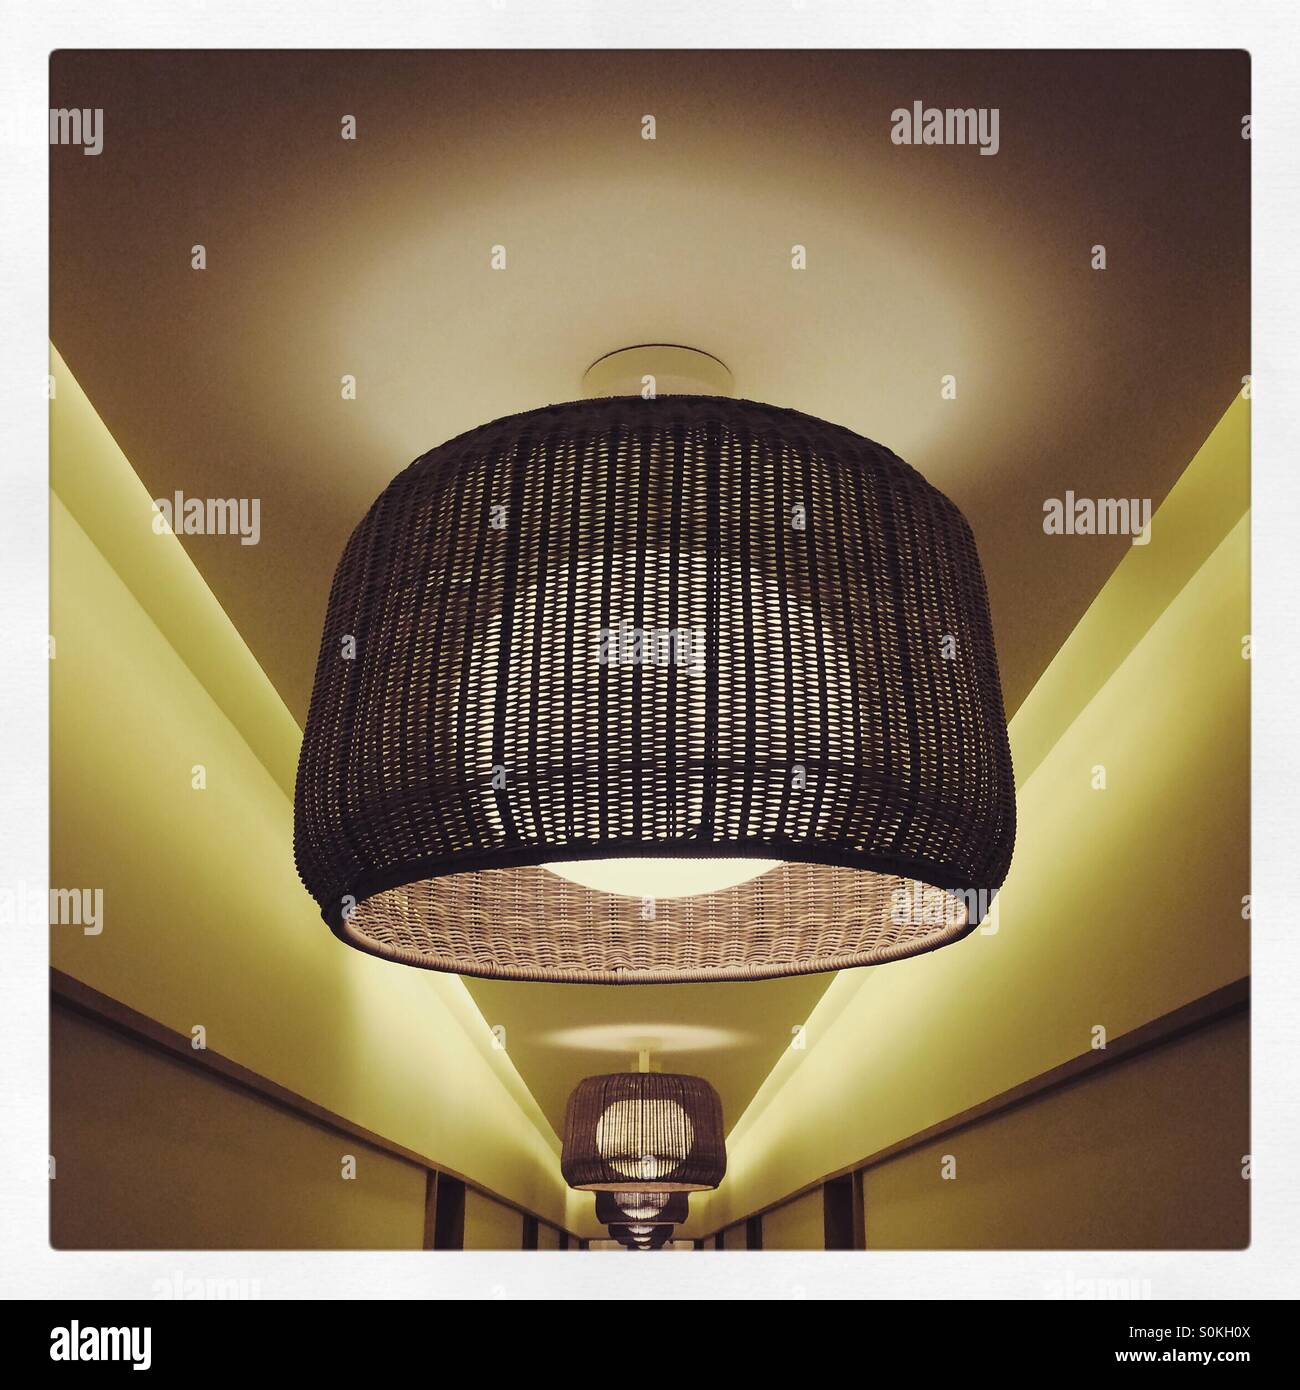 Lampshades stock photos lampshades stock images alamy lamp shades in a long hotel corridor stock image mozeypictures Choice Image